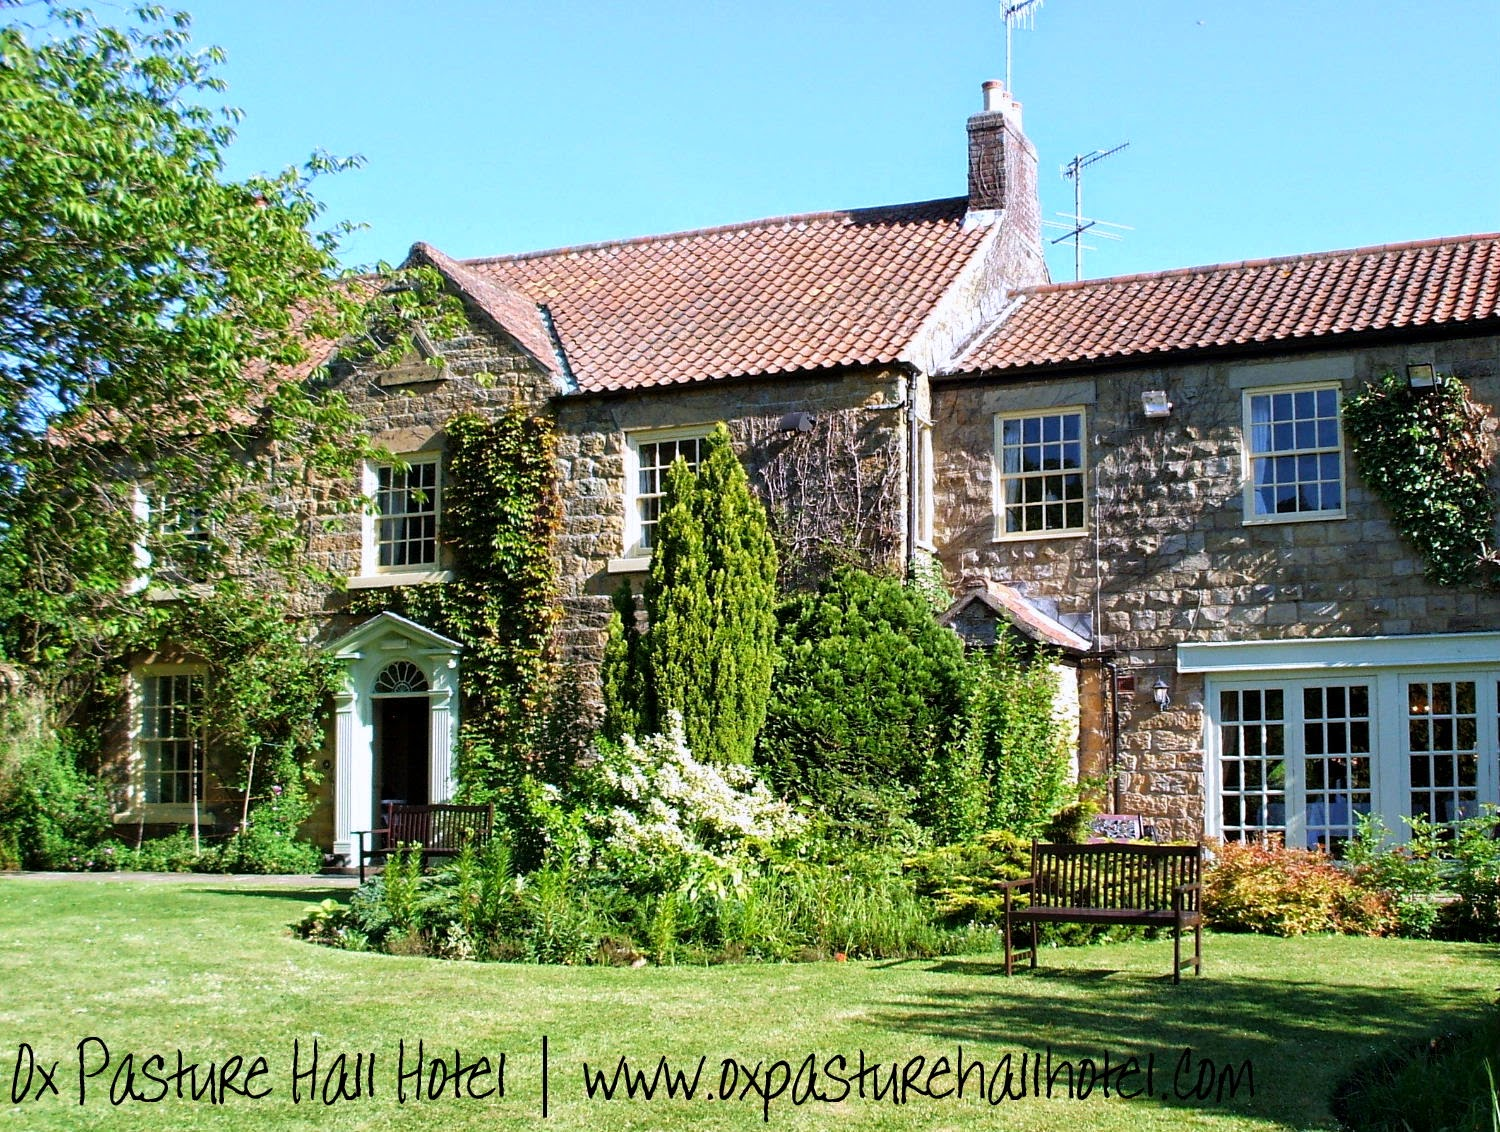 Ox Pasture Hall Hotel's welcoming & beautiful facitility | Anyonita-nibbles.co.uk